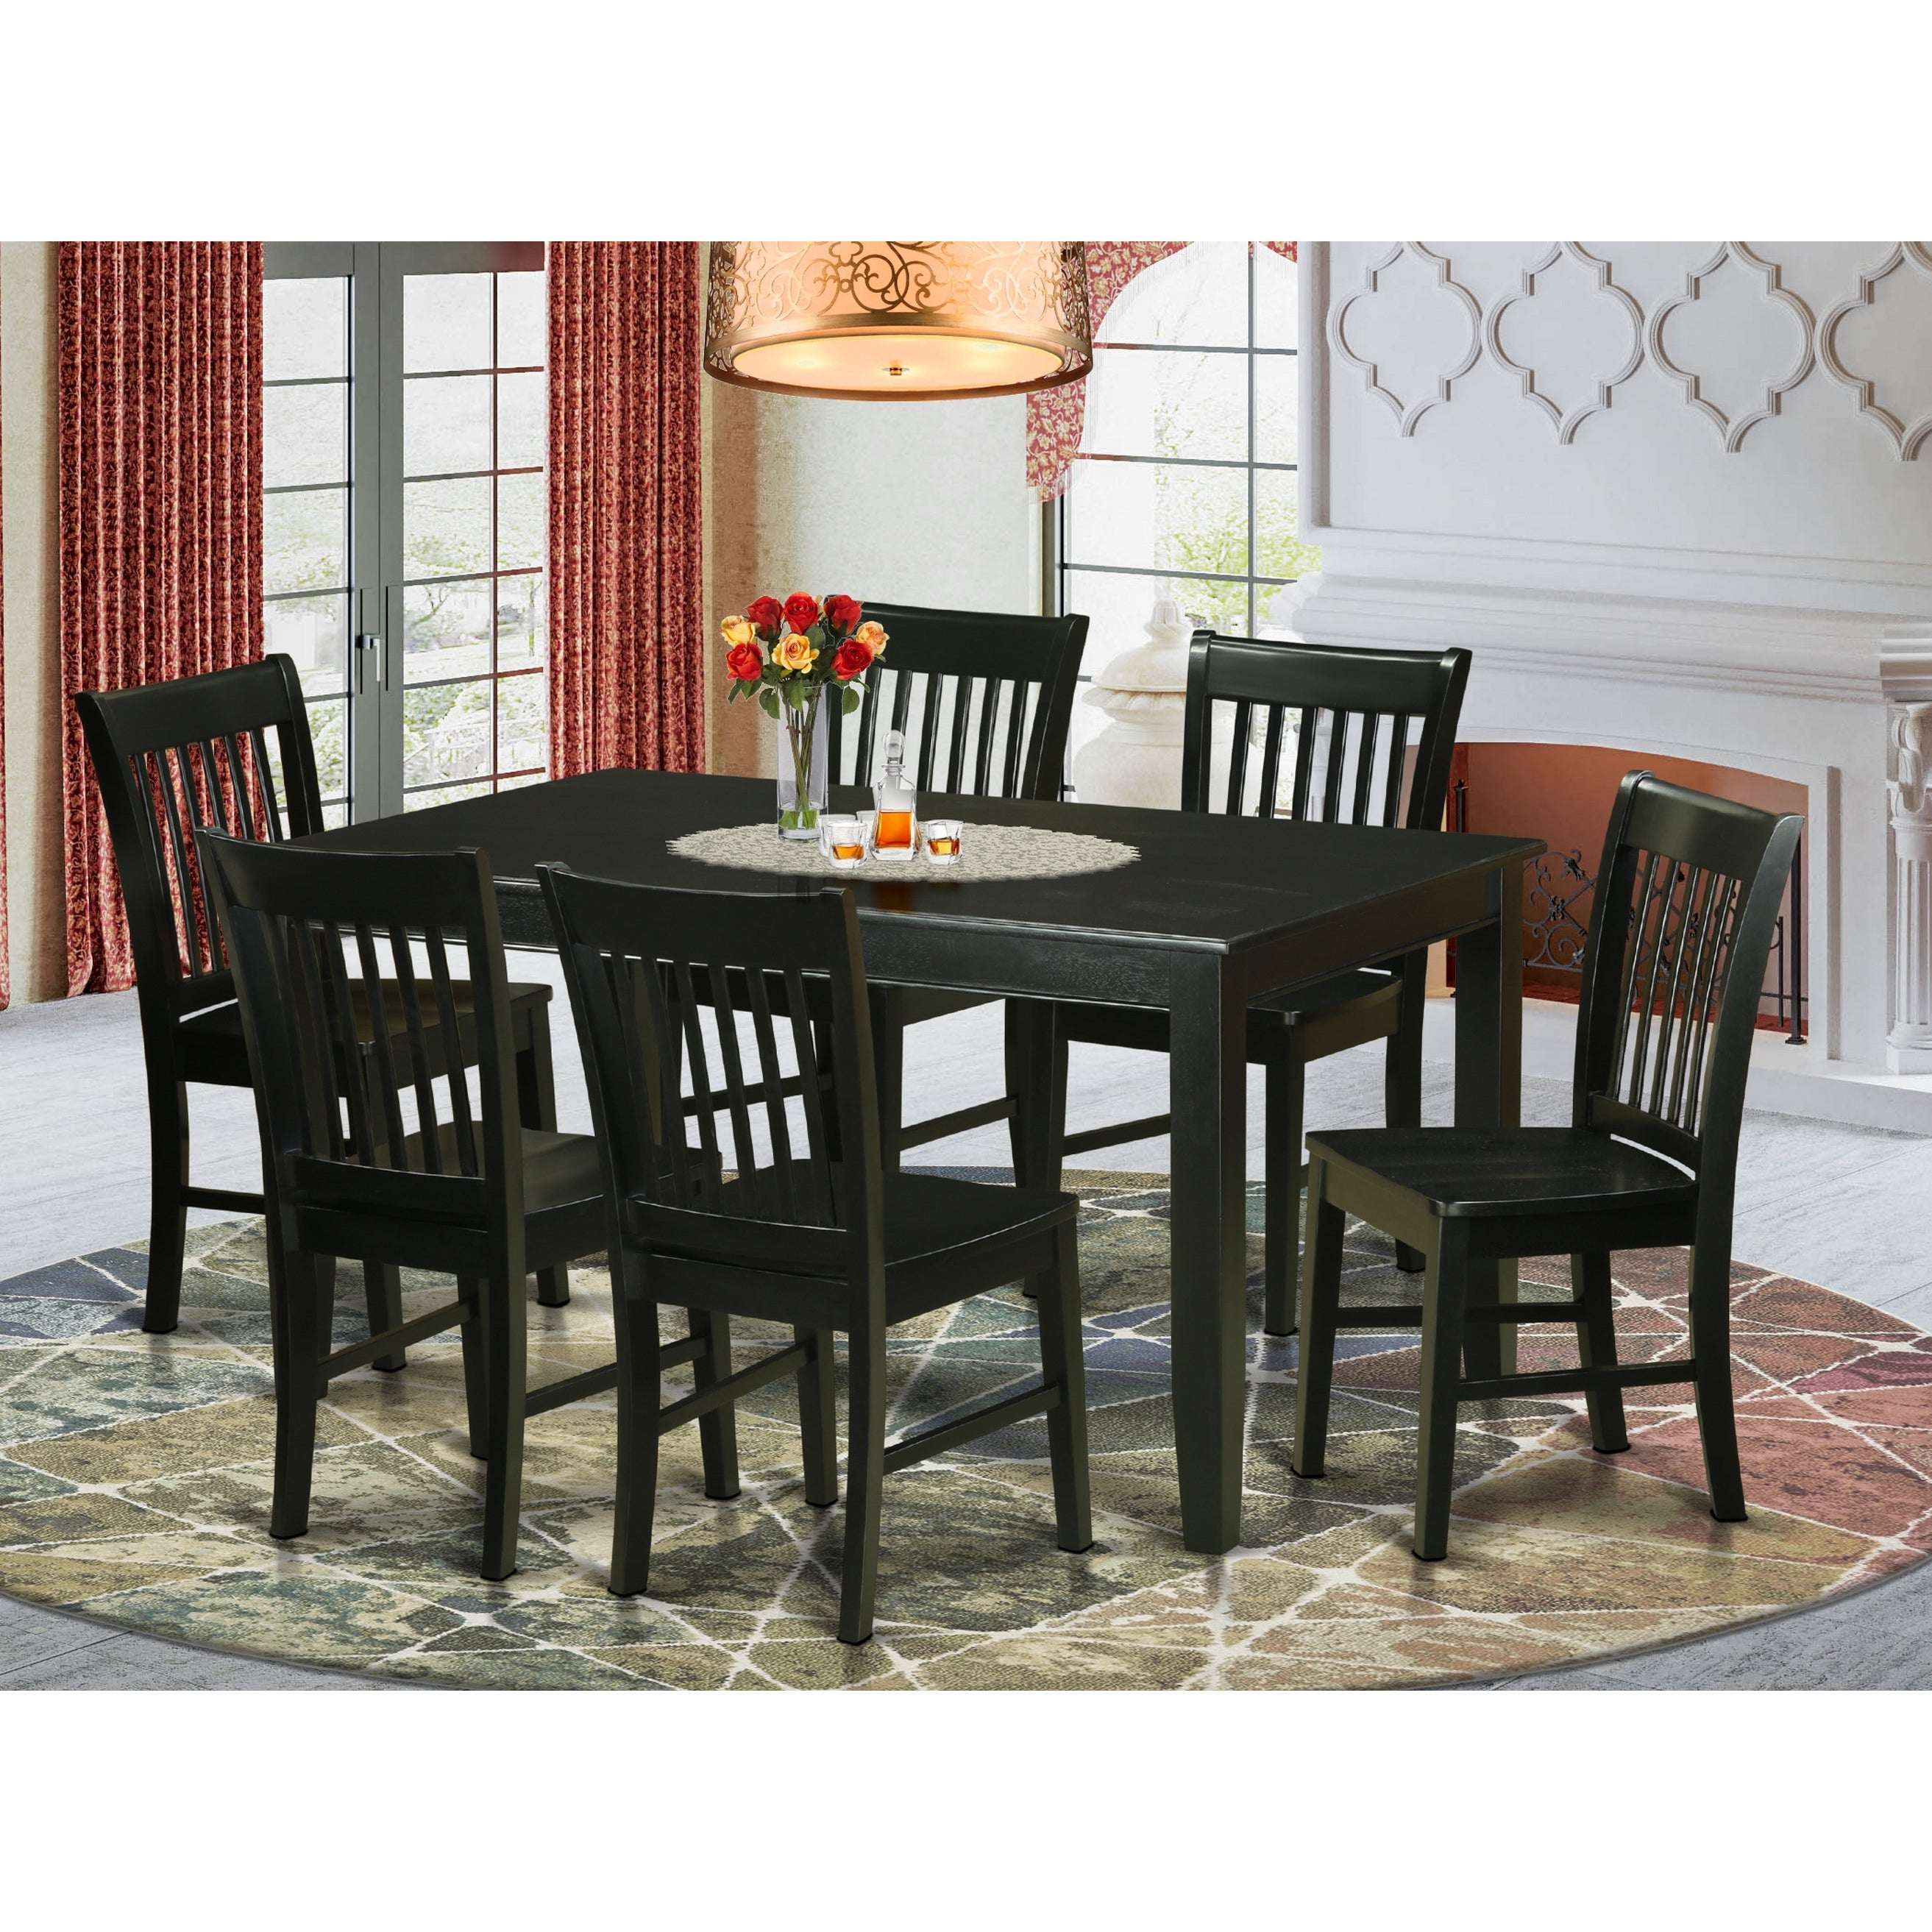 Duno7 Blk Black Rubberwood 7 Piece Dining Set With Table And 6 Chairs Overstock 12027354